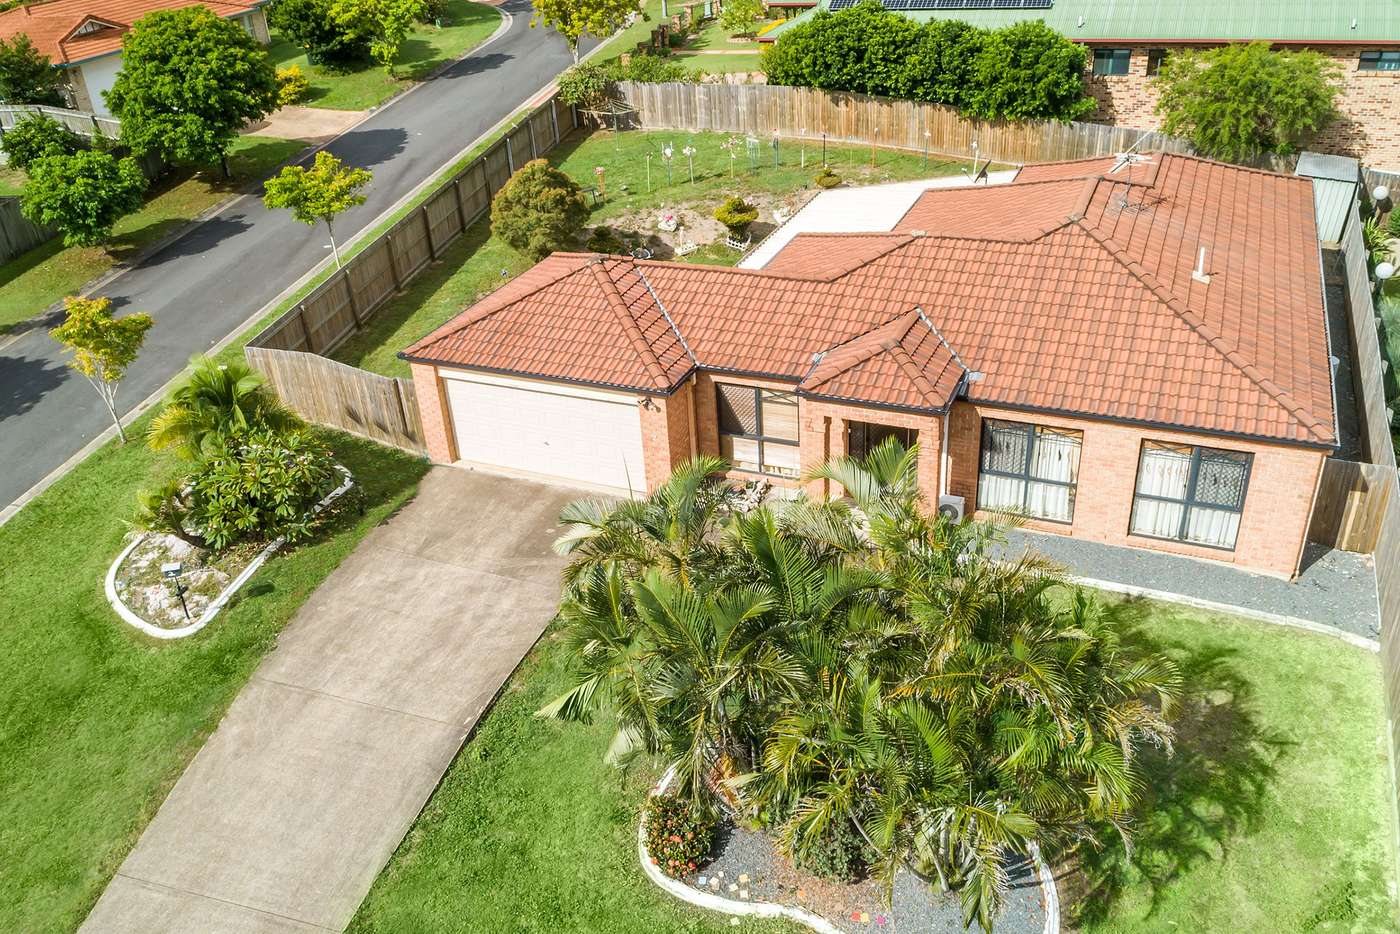 Main view of Homely house listing, 103 Rubicon Crescent, Kuraby QLD 4112